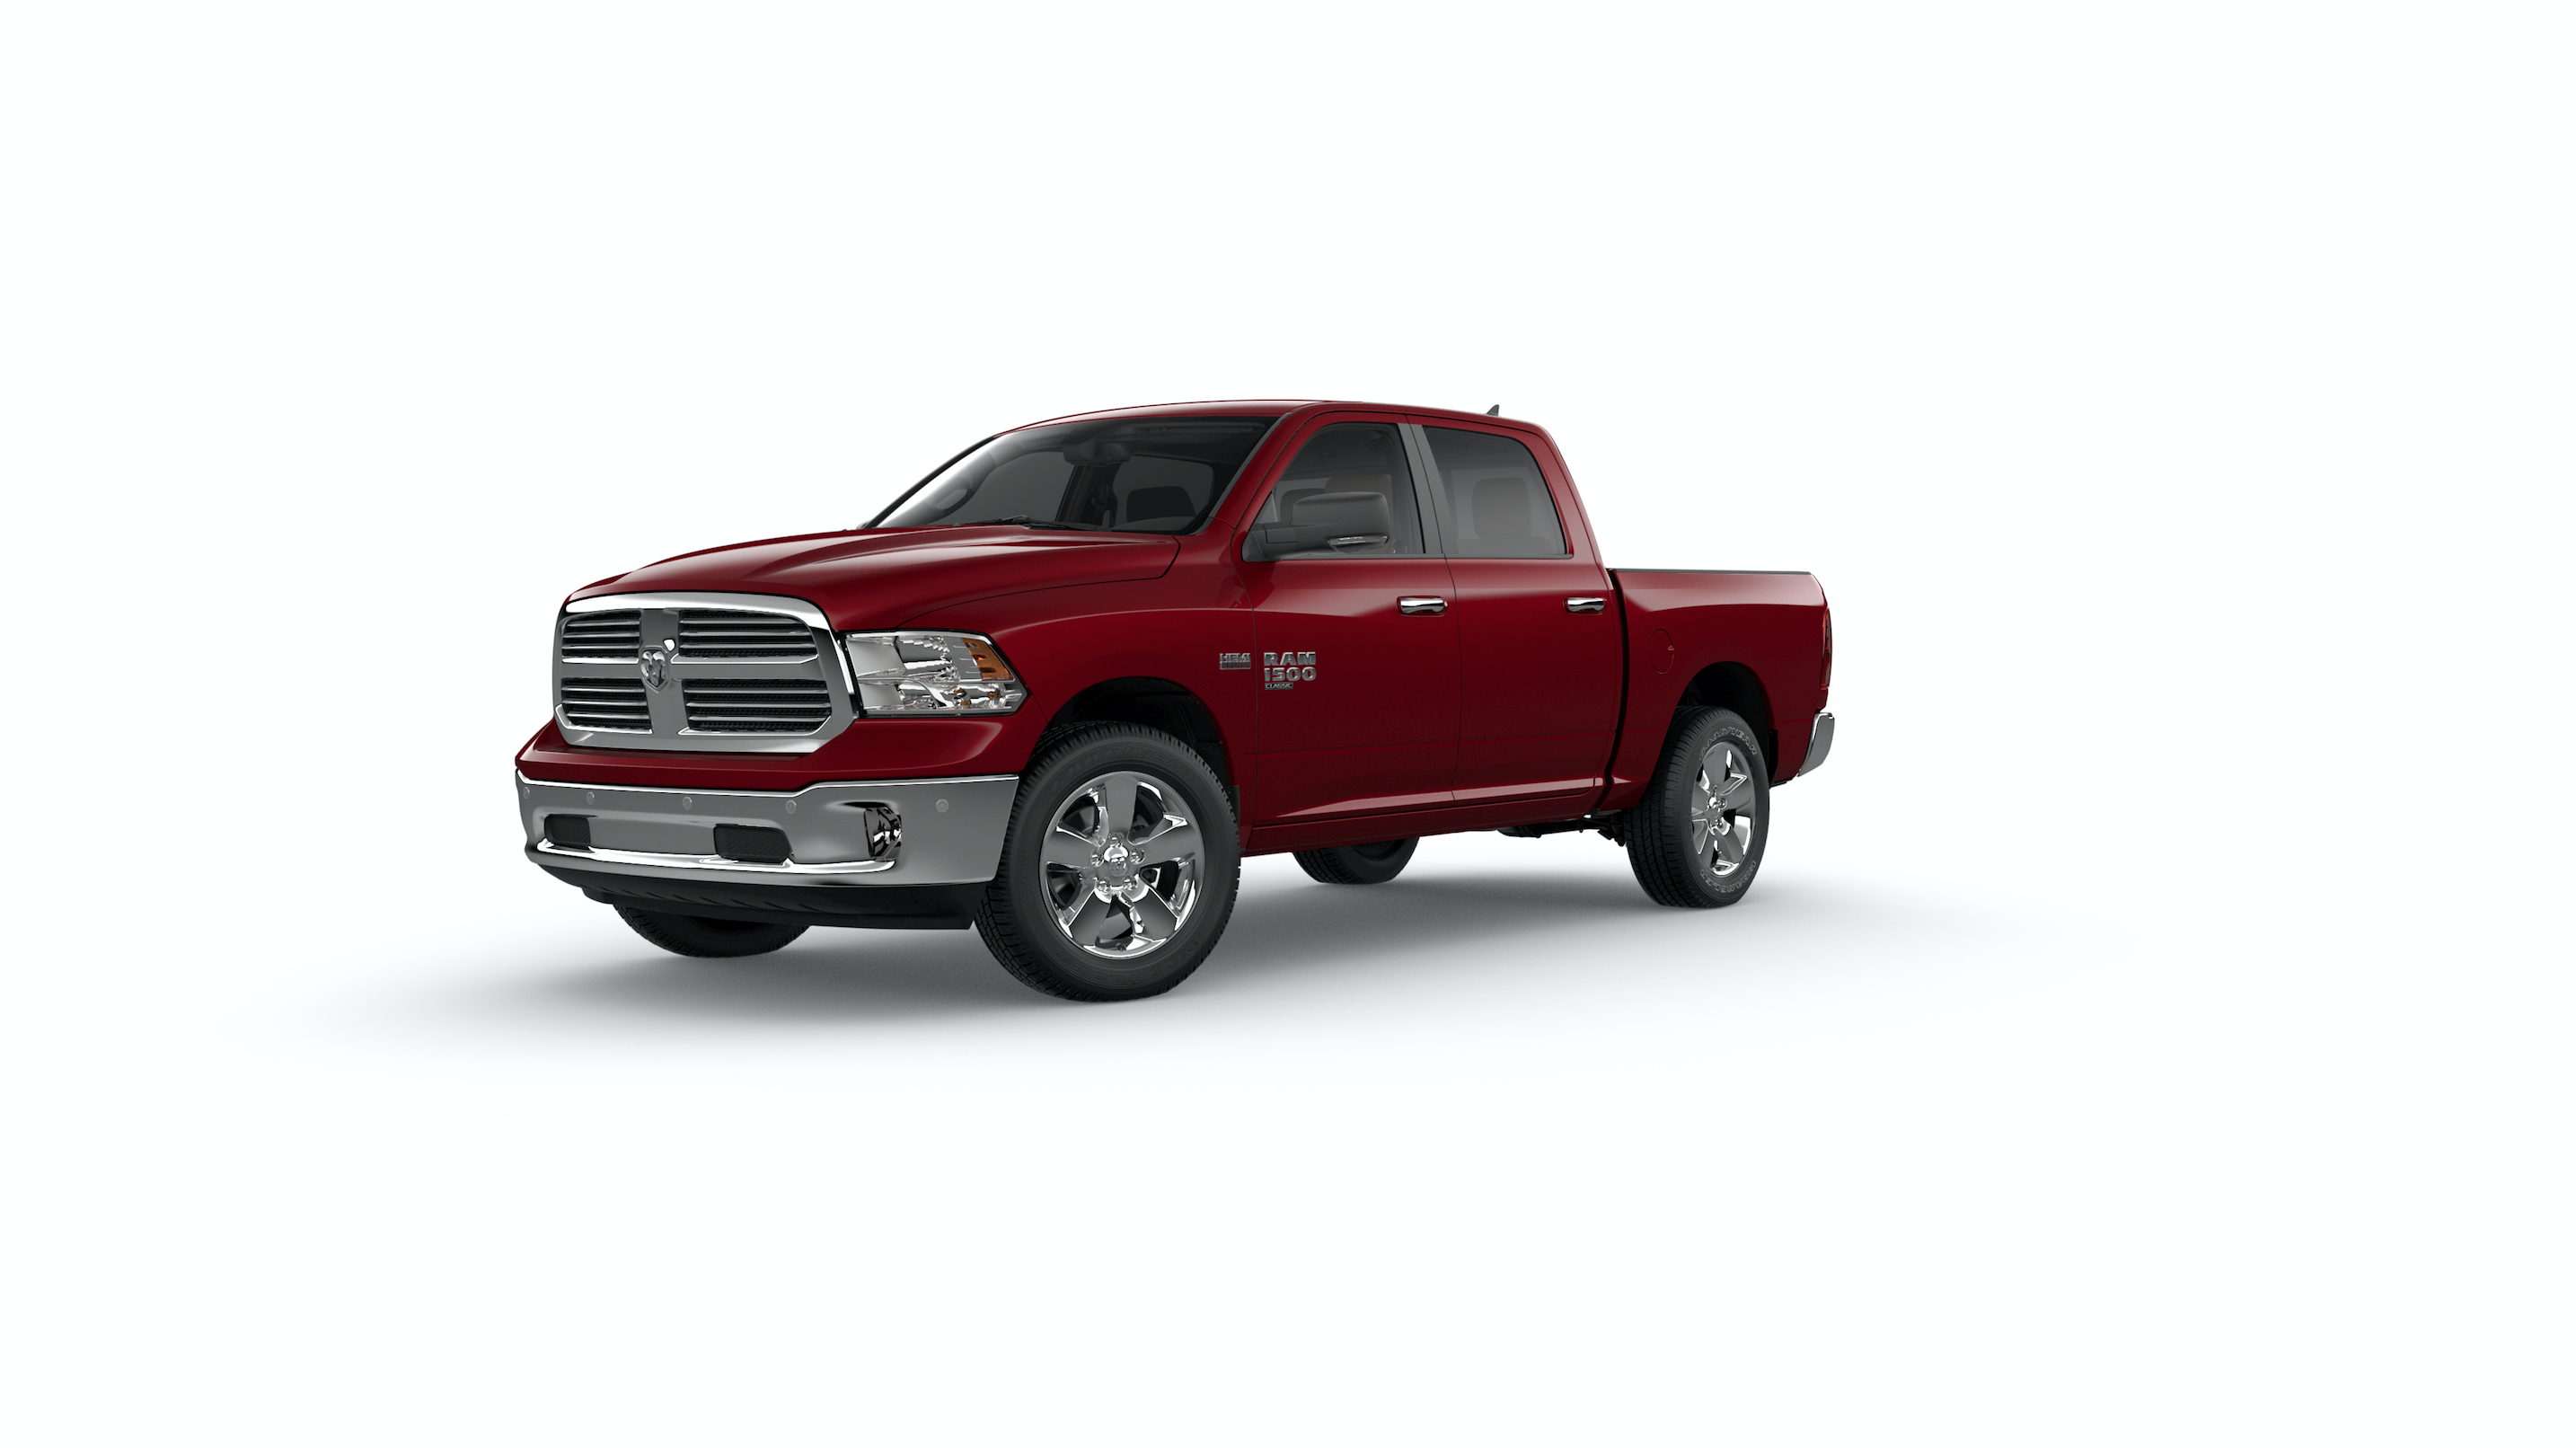 2019 Ram 1500 Will Be Available In Two Body Styles Medium